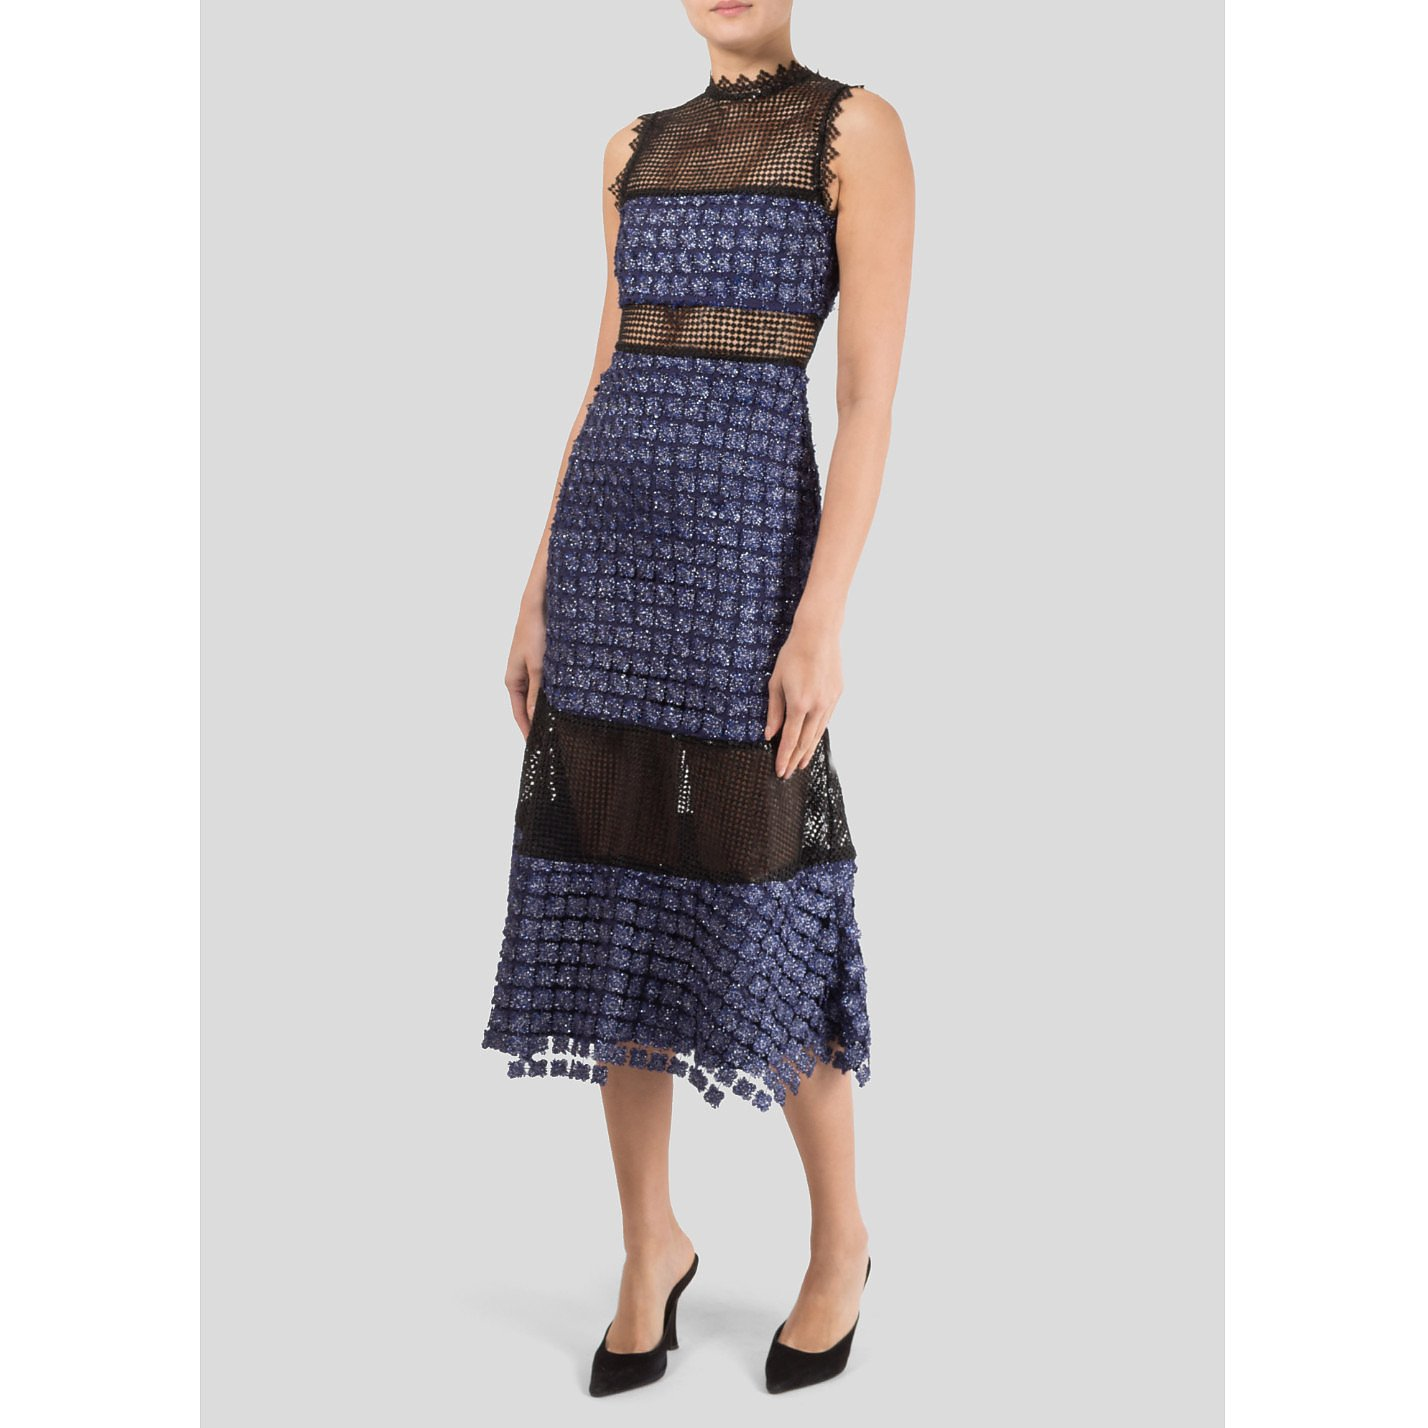 Self-Portrait Metallic Embroidered Dress with Sequin Panels